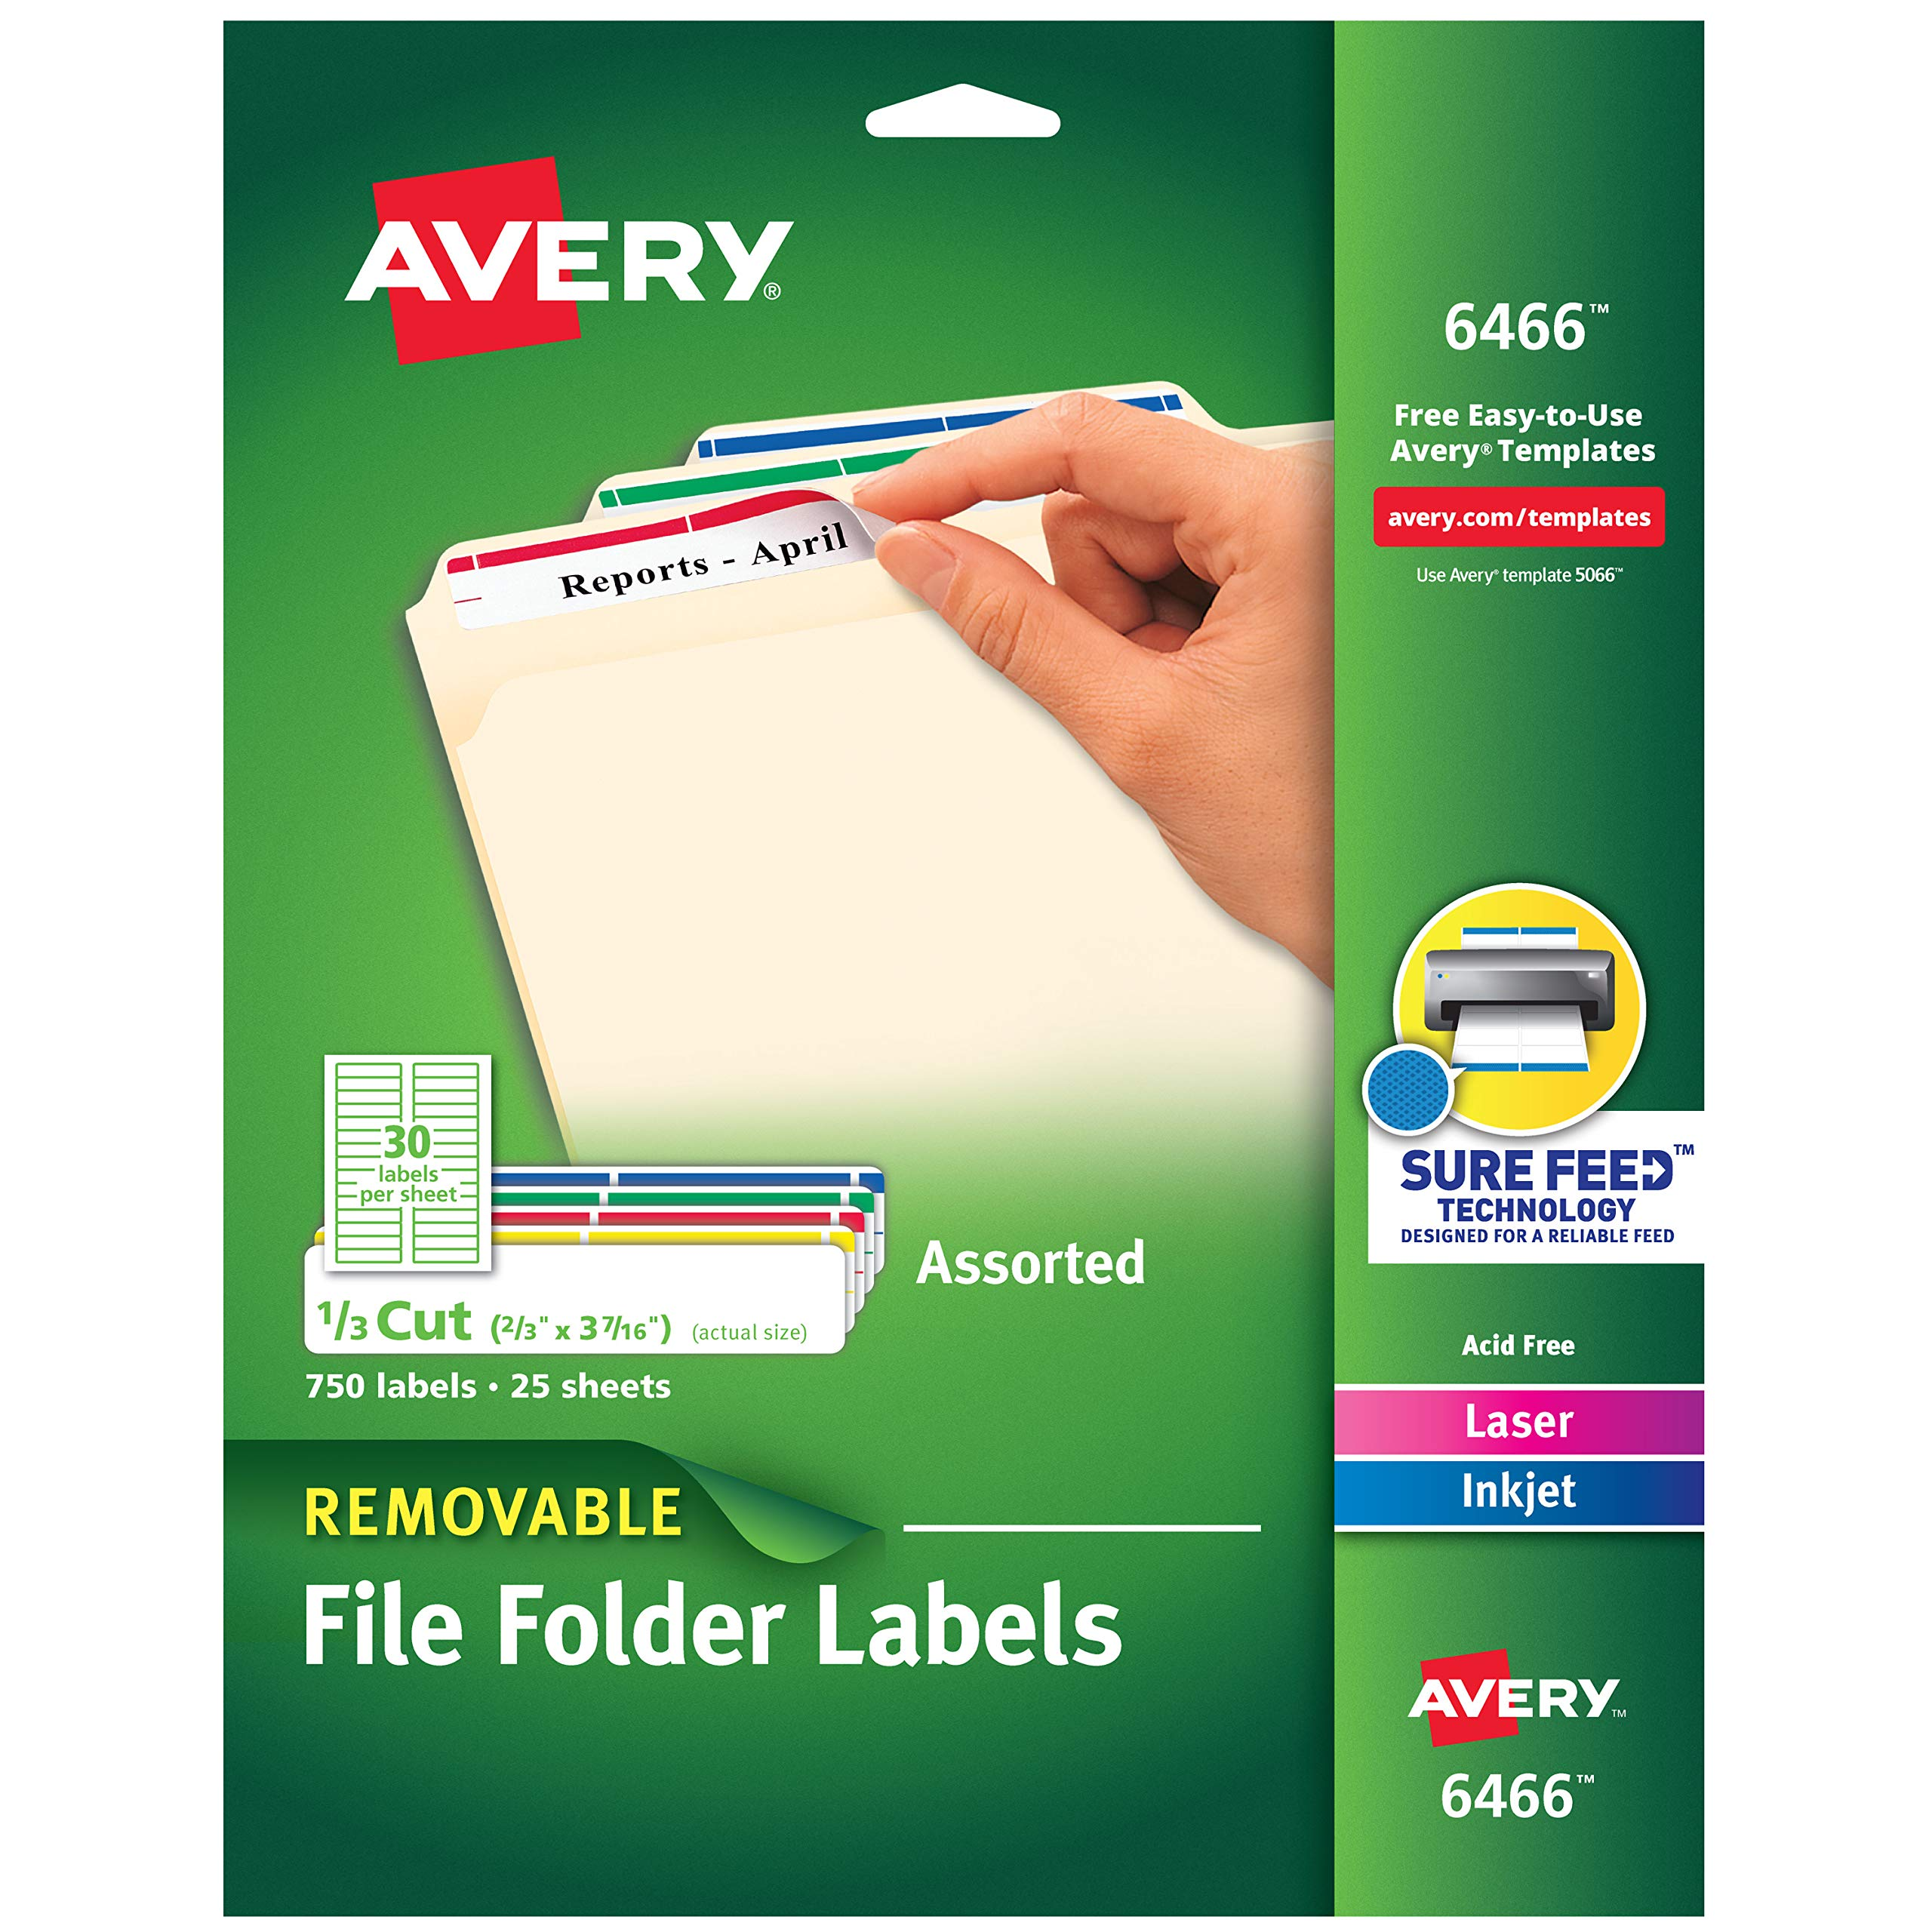 Avery Removable 2/3 x 3 7/16 File Folder Labels 750 Pack (6466) by AVERY